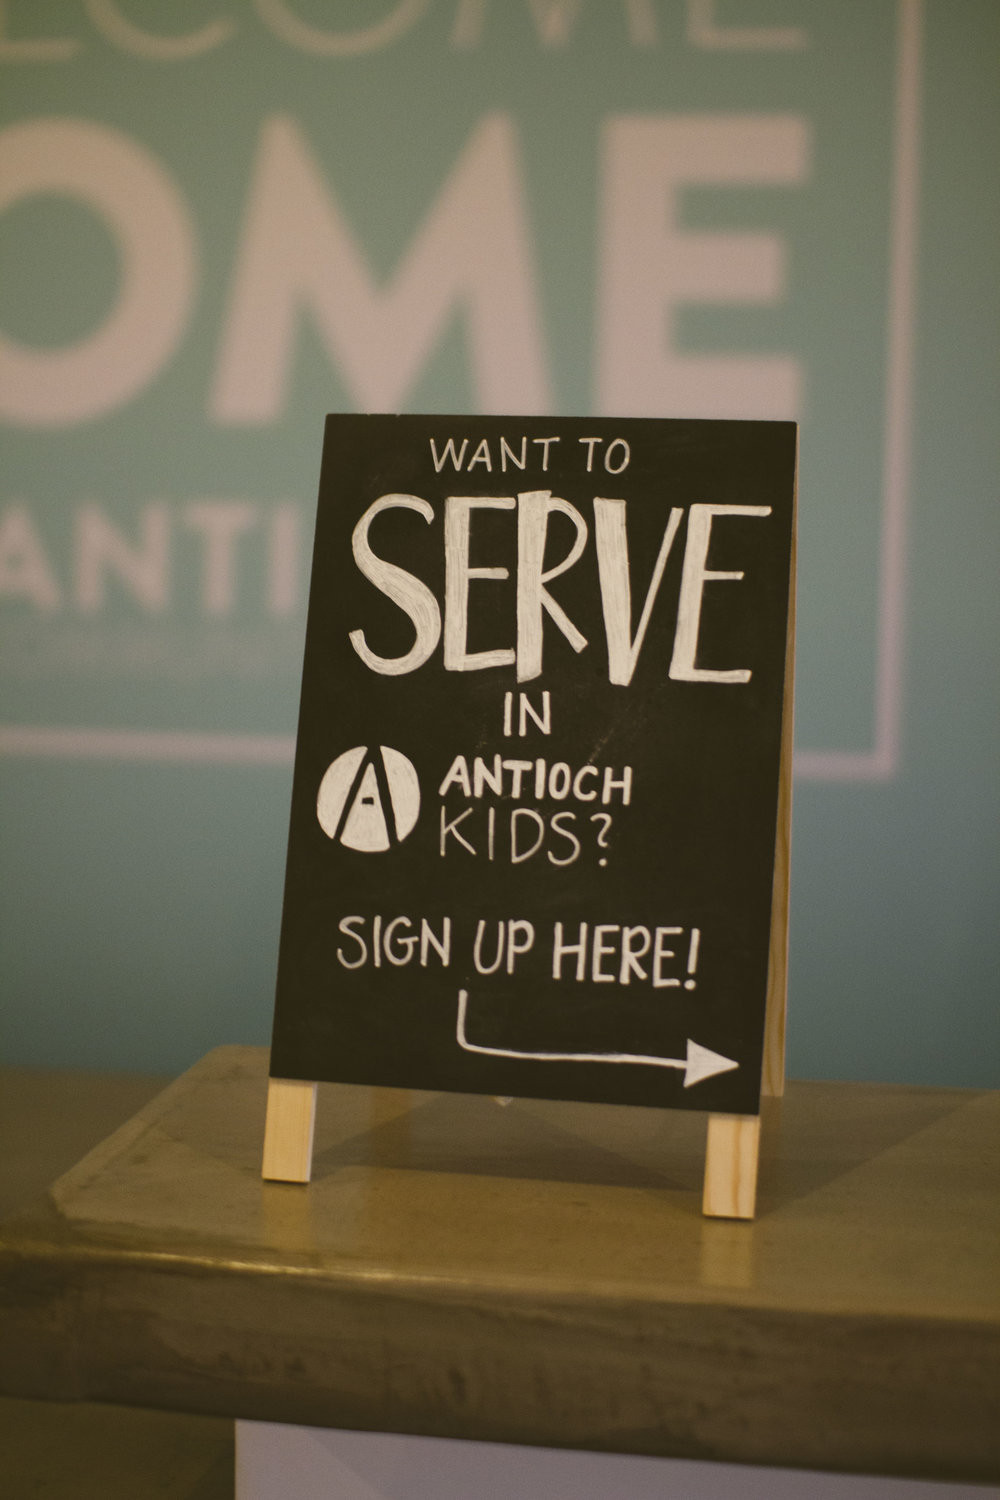 Saved People Serve People. - Consider serving this Spring! Meet us at the Welcome Desk to hear more about our Serve Teams.